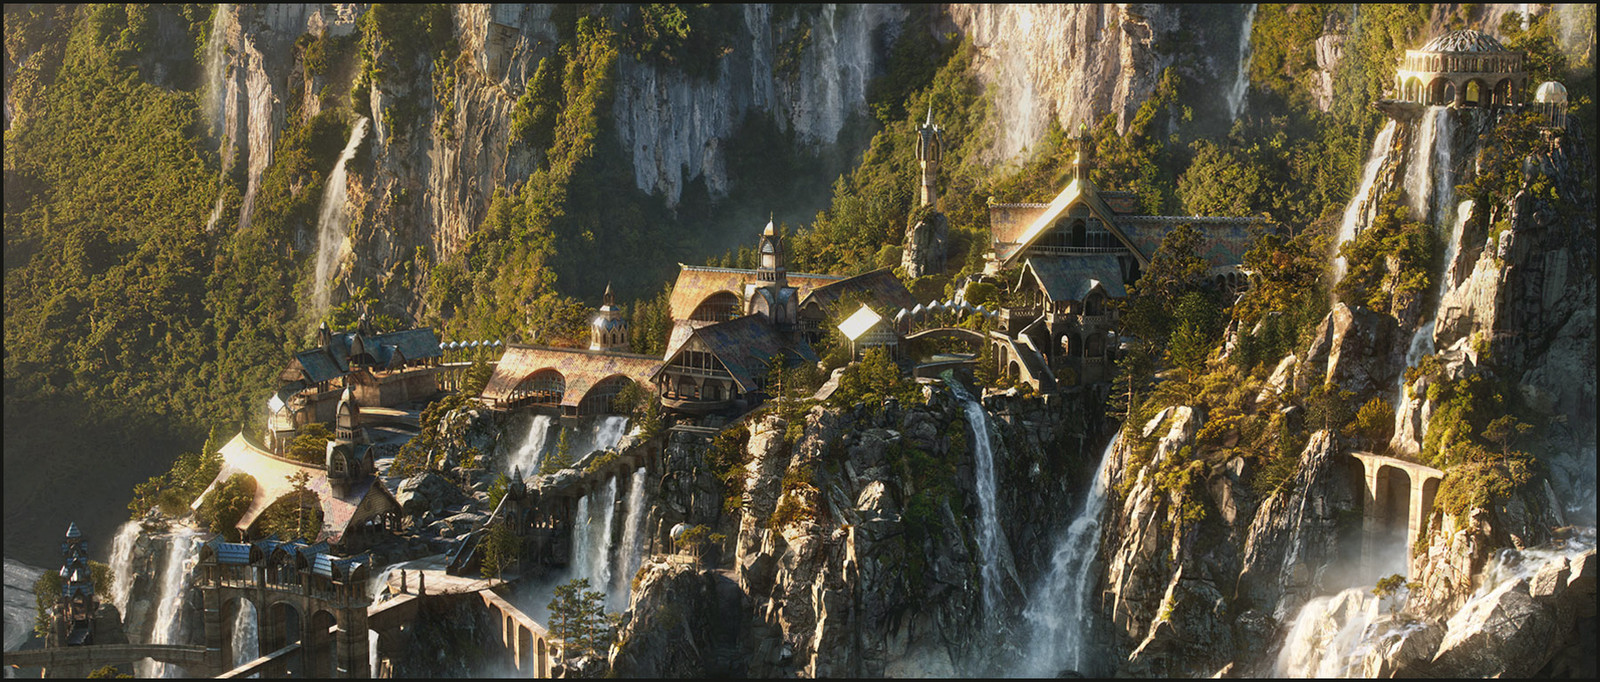 The Hobbit trilogy / Arriving at Rivendell